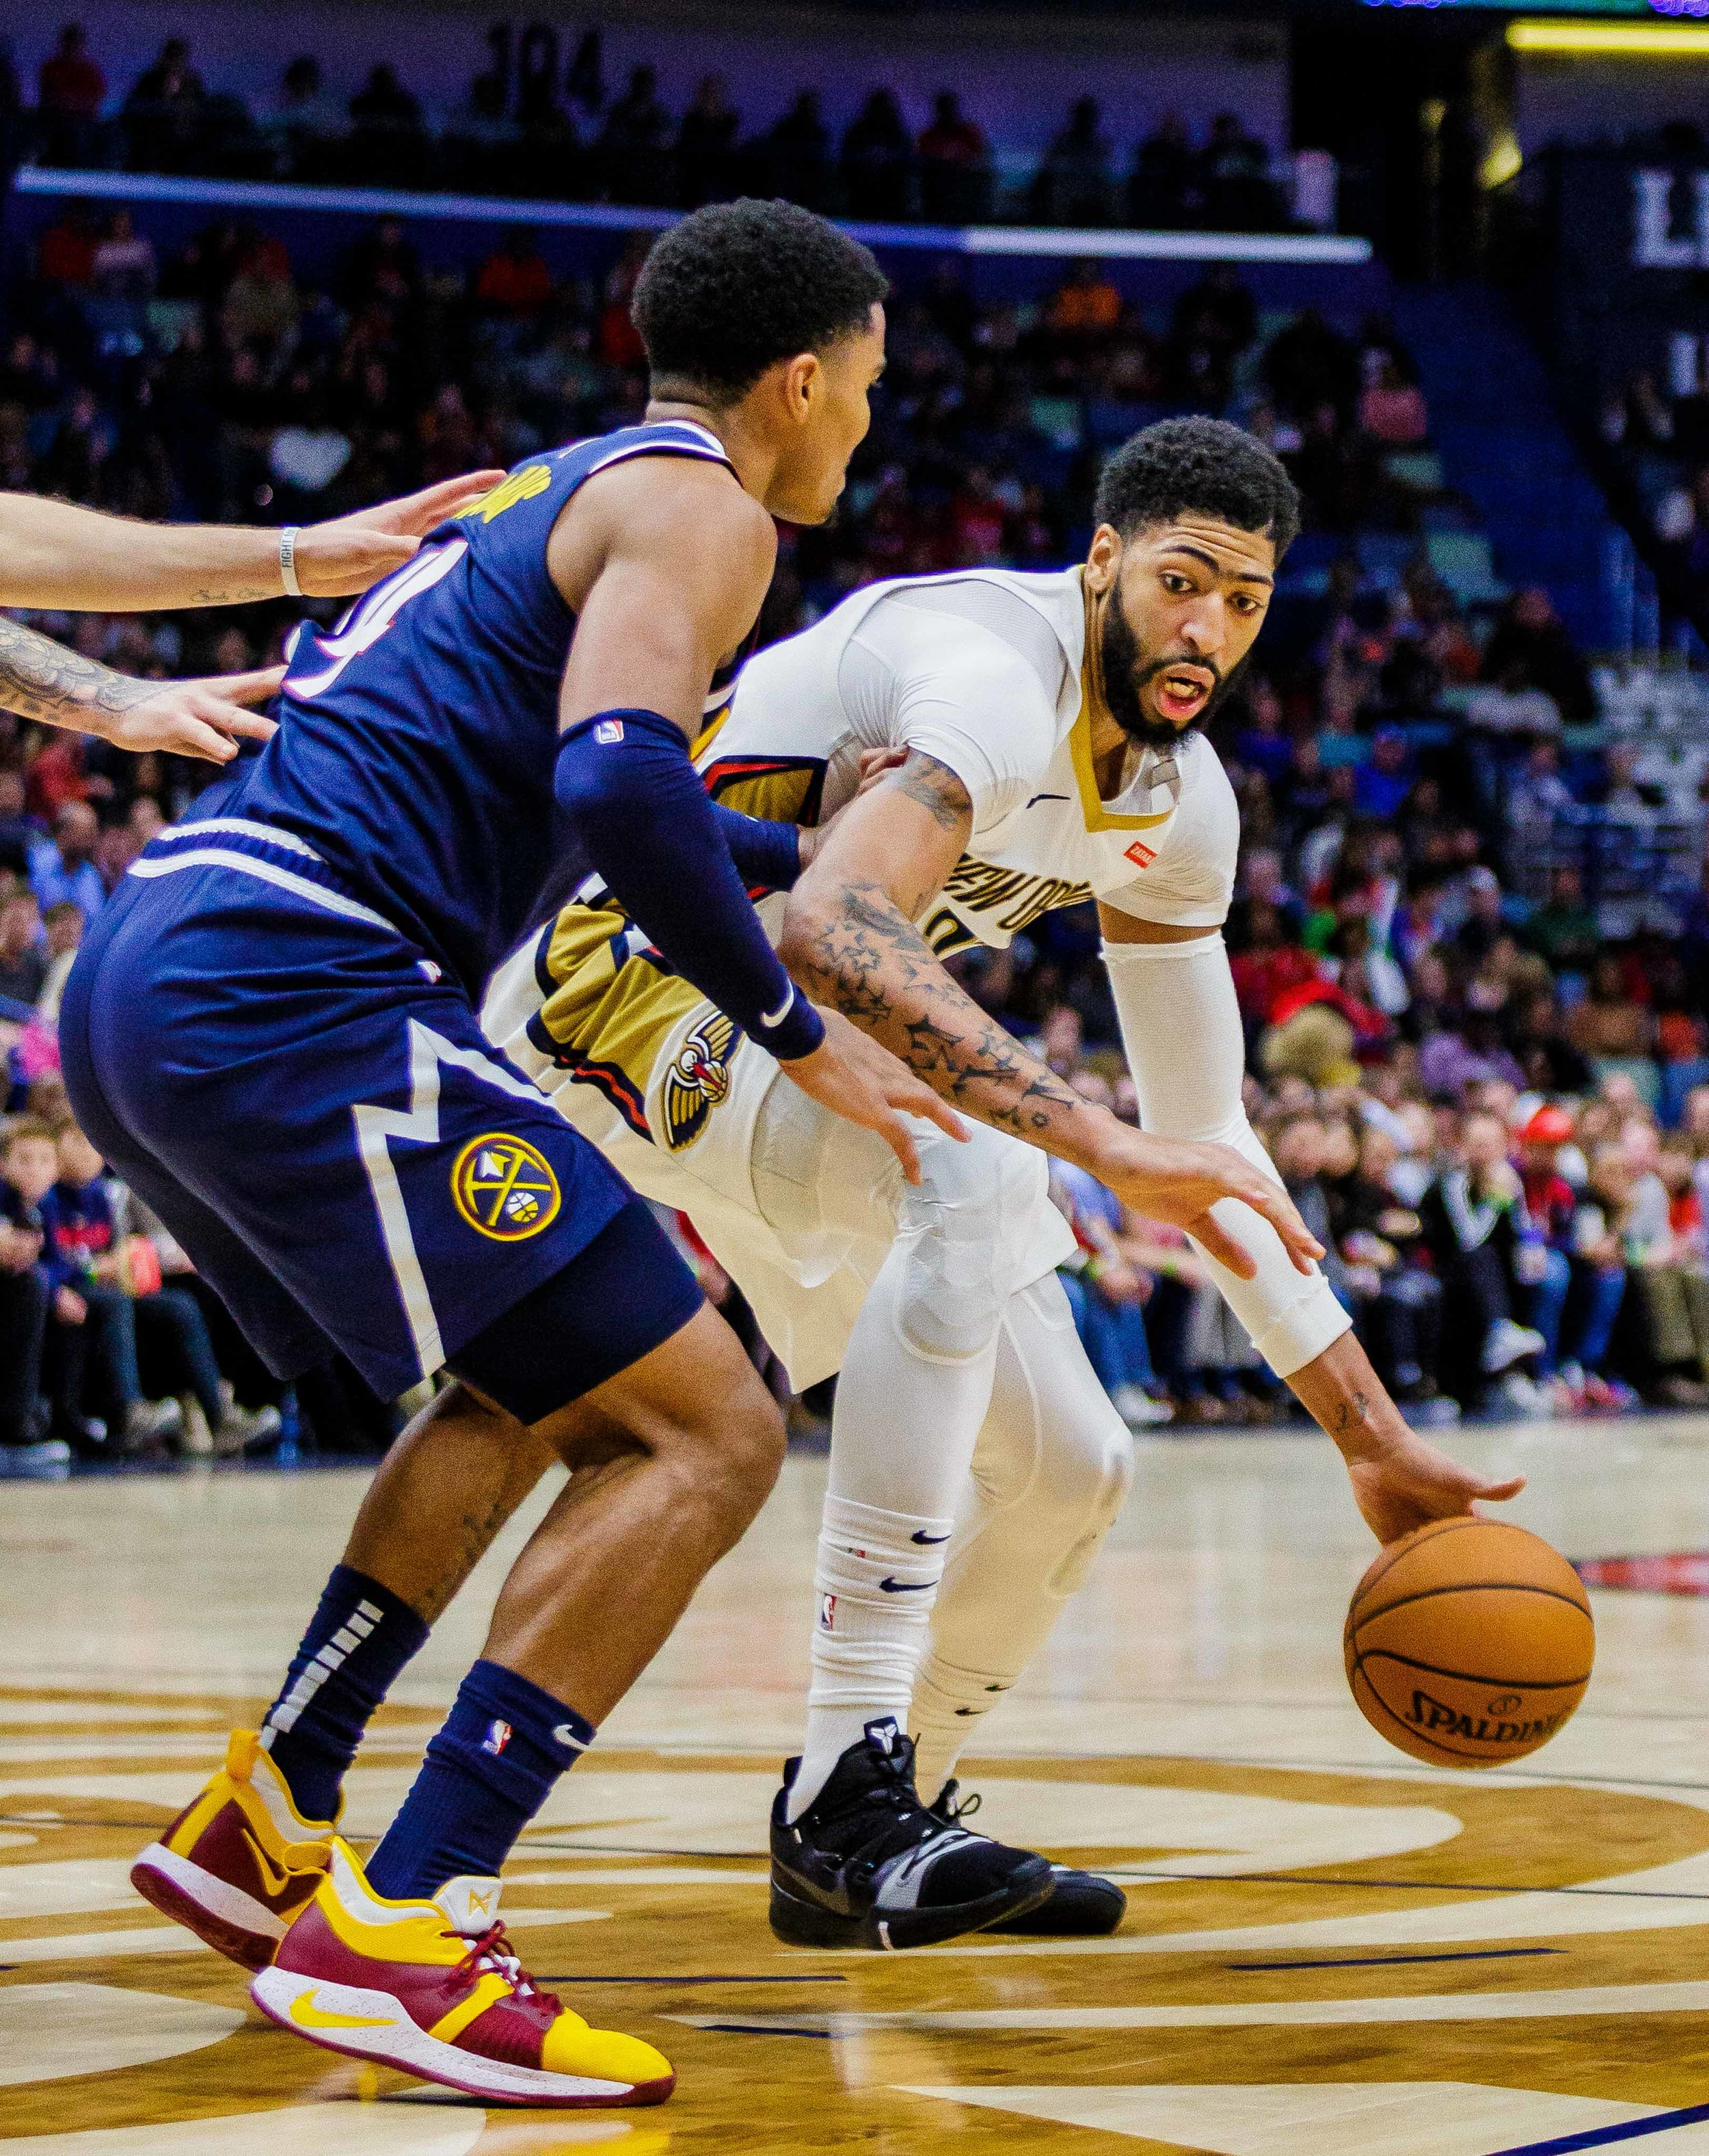 New OrleansPelicansforward Anthony Davis (23) pushes past Denver Nuggets guard Gary Harris (14) in the second half of an NBA basketball game in the Smoothie King Center in New Orleans, La. Monday, Nov. 17, 2018. ThePelicanswon, 125-115.